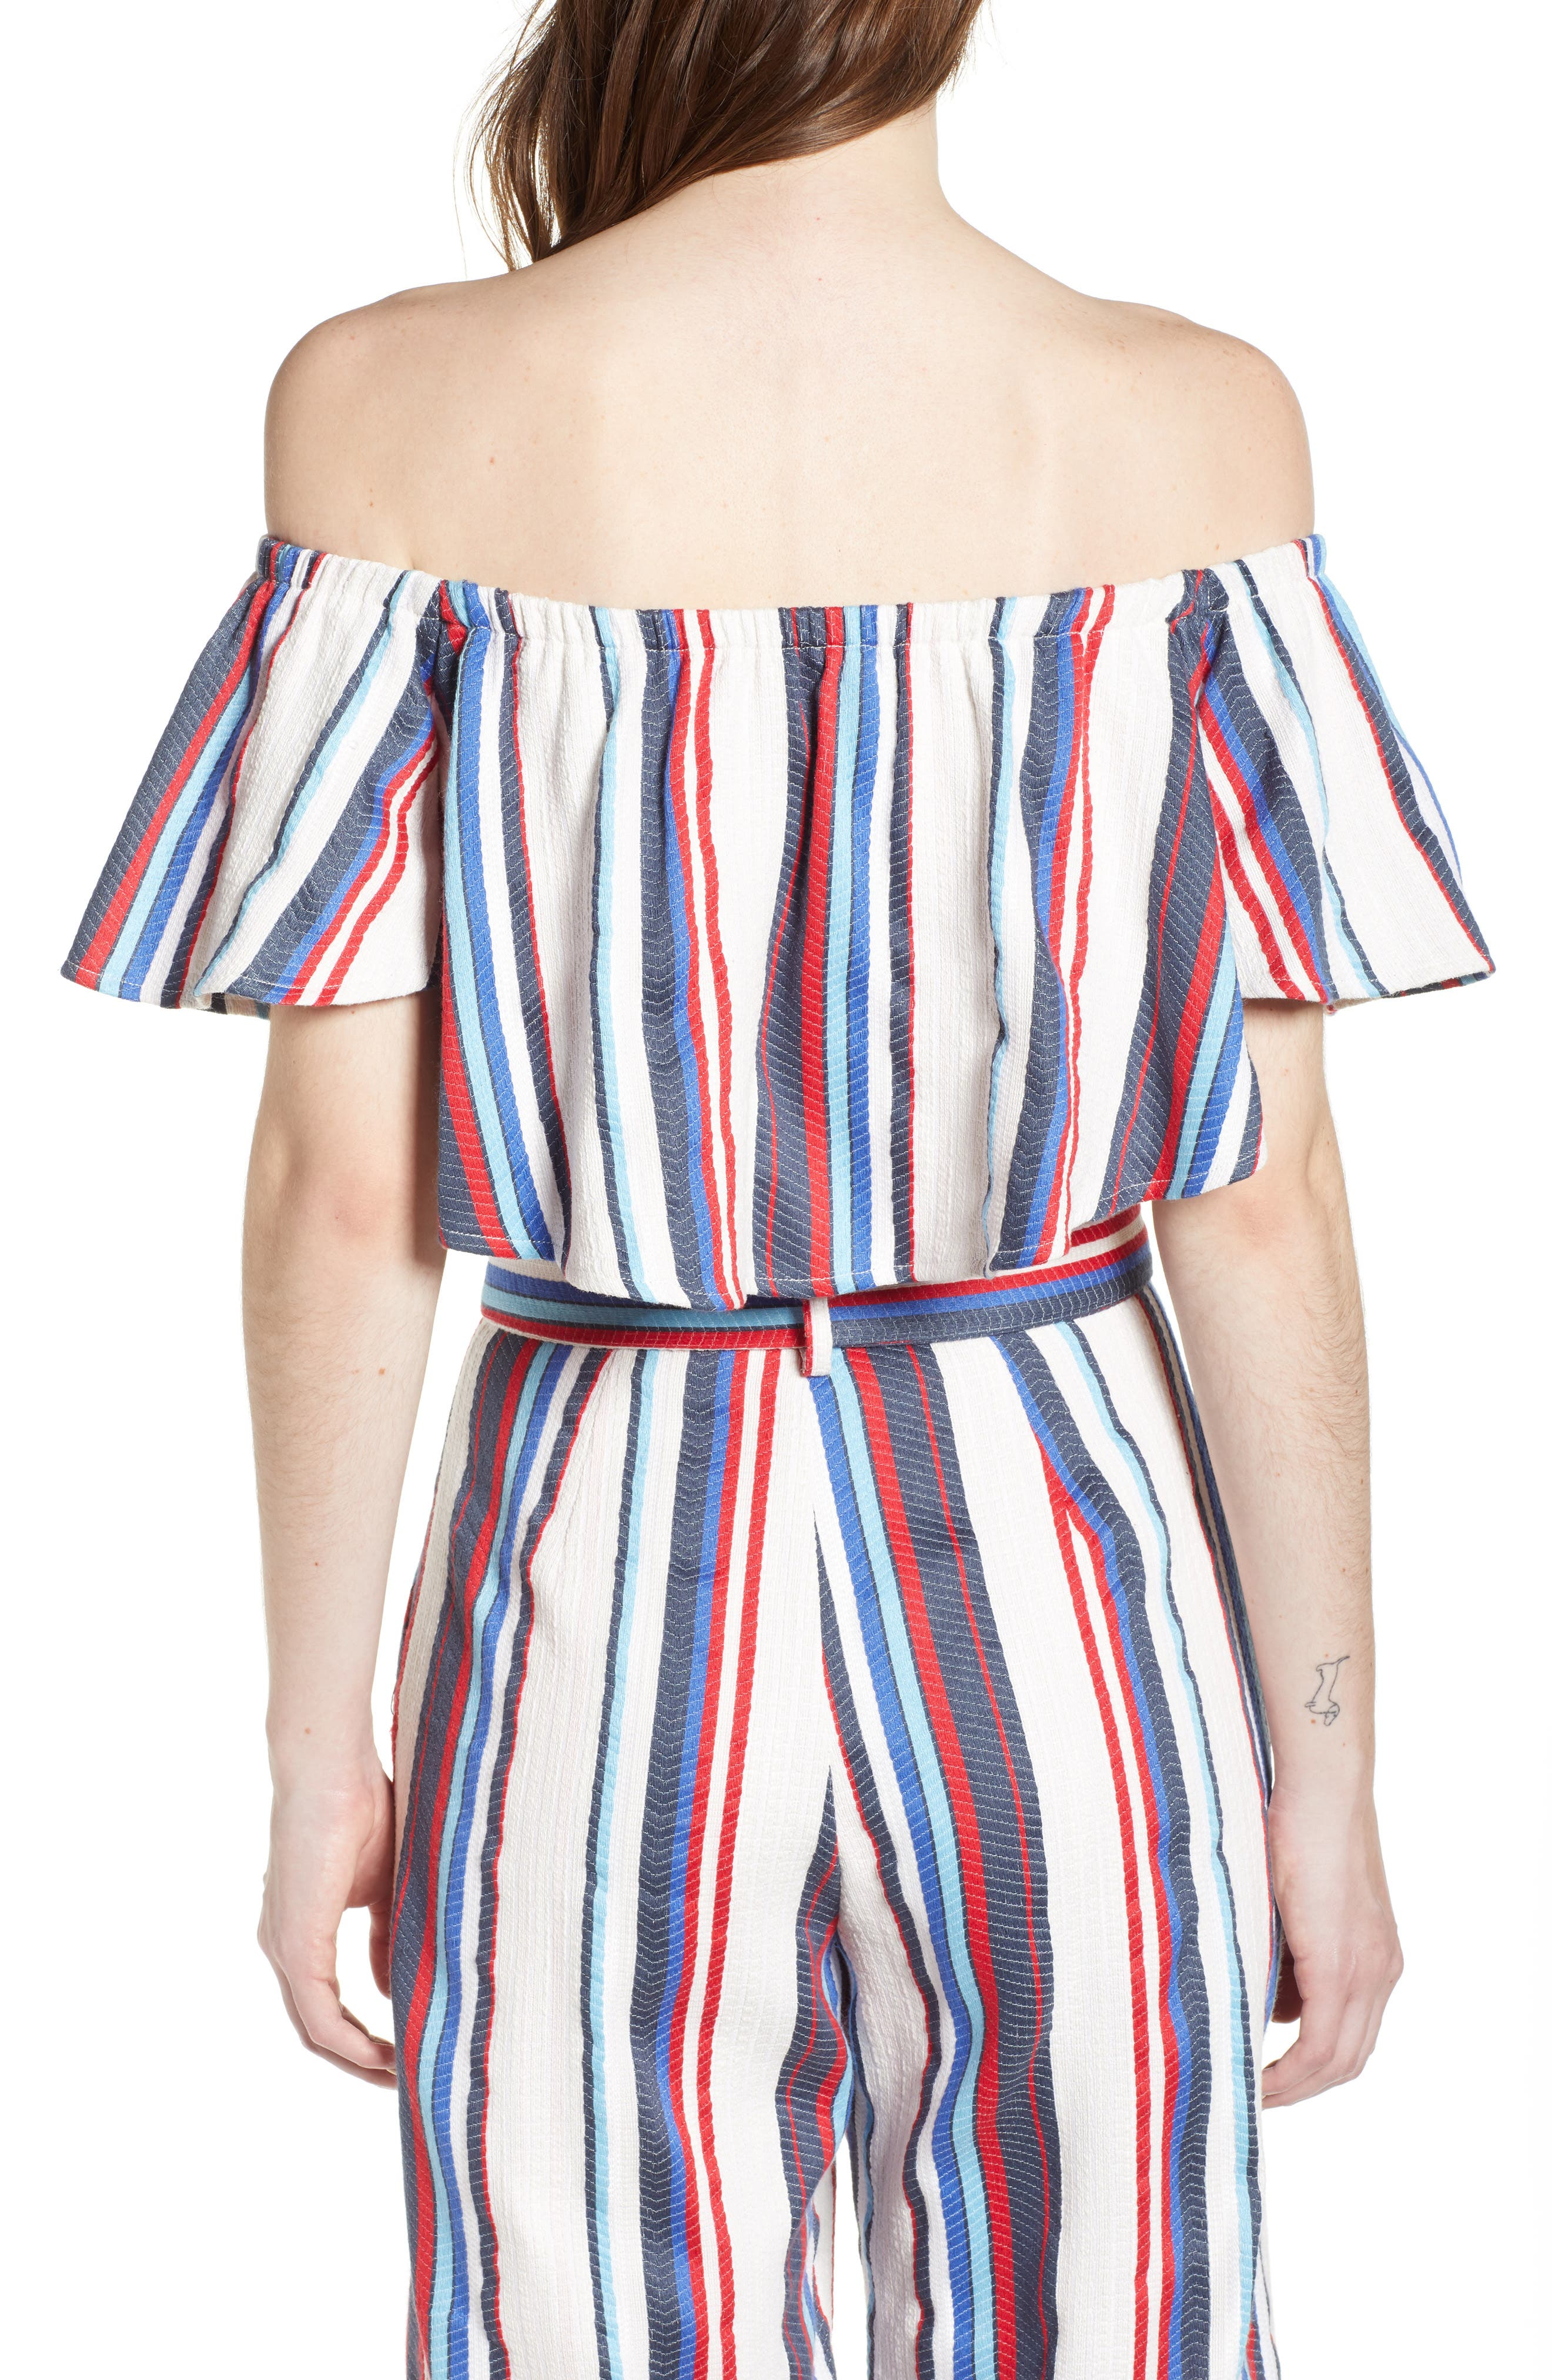 Azul Stripe Off the Shoulder Crop Top,                             Alternate thumbnail 3, color,                             Blue/ Red Stripe